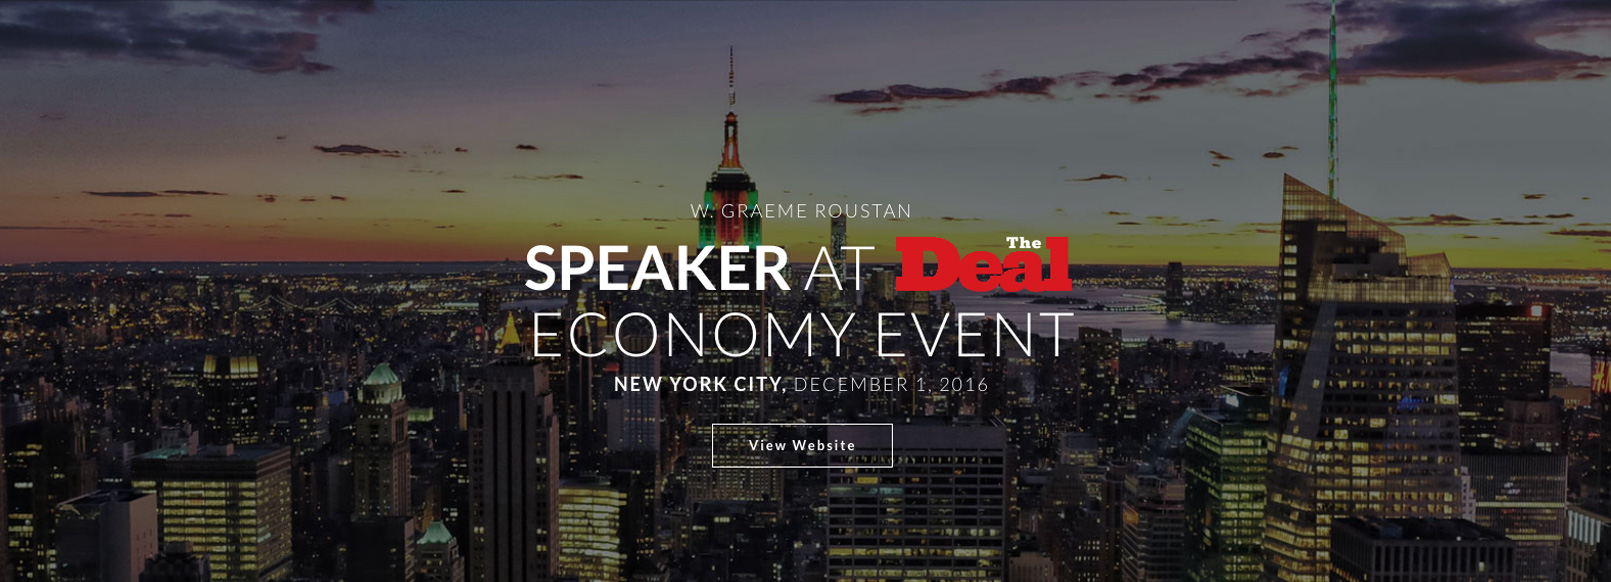 Home Page Sliders The Deal Economy Event Speaker